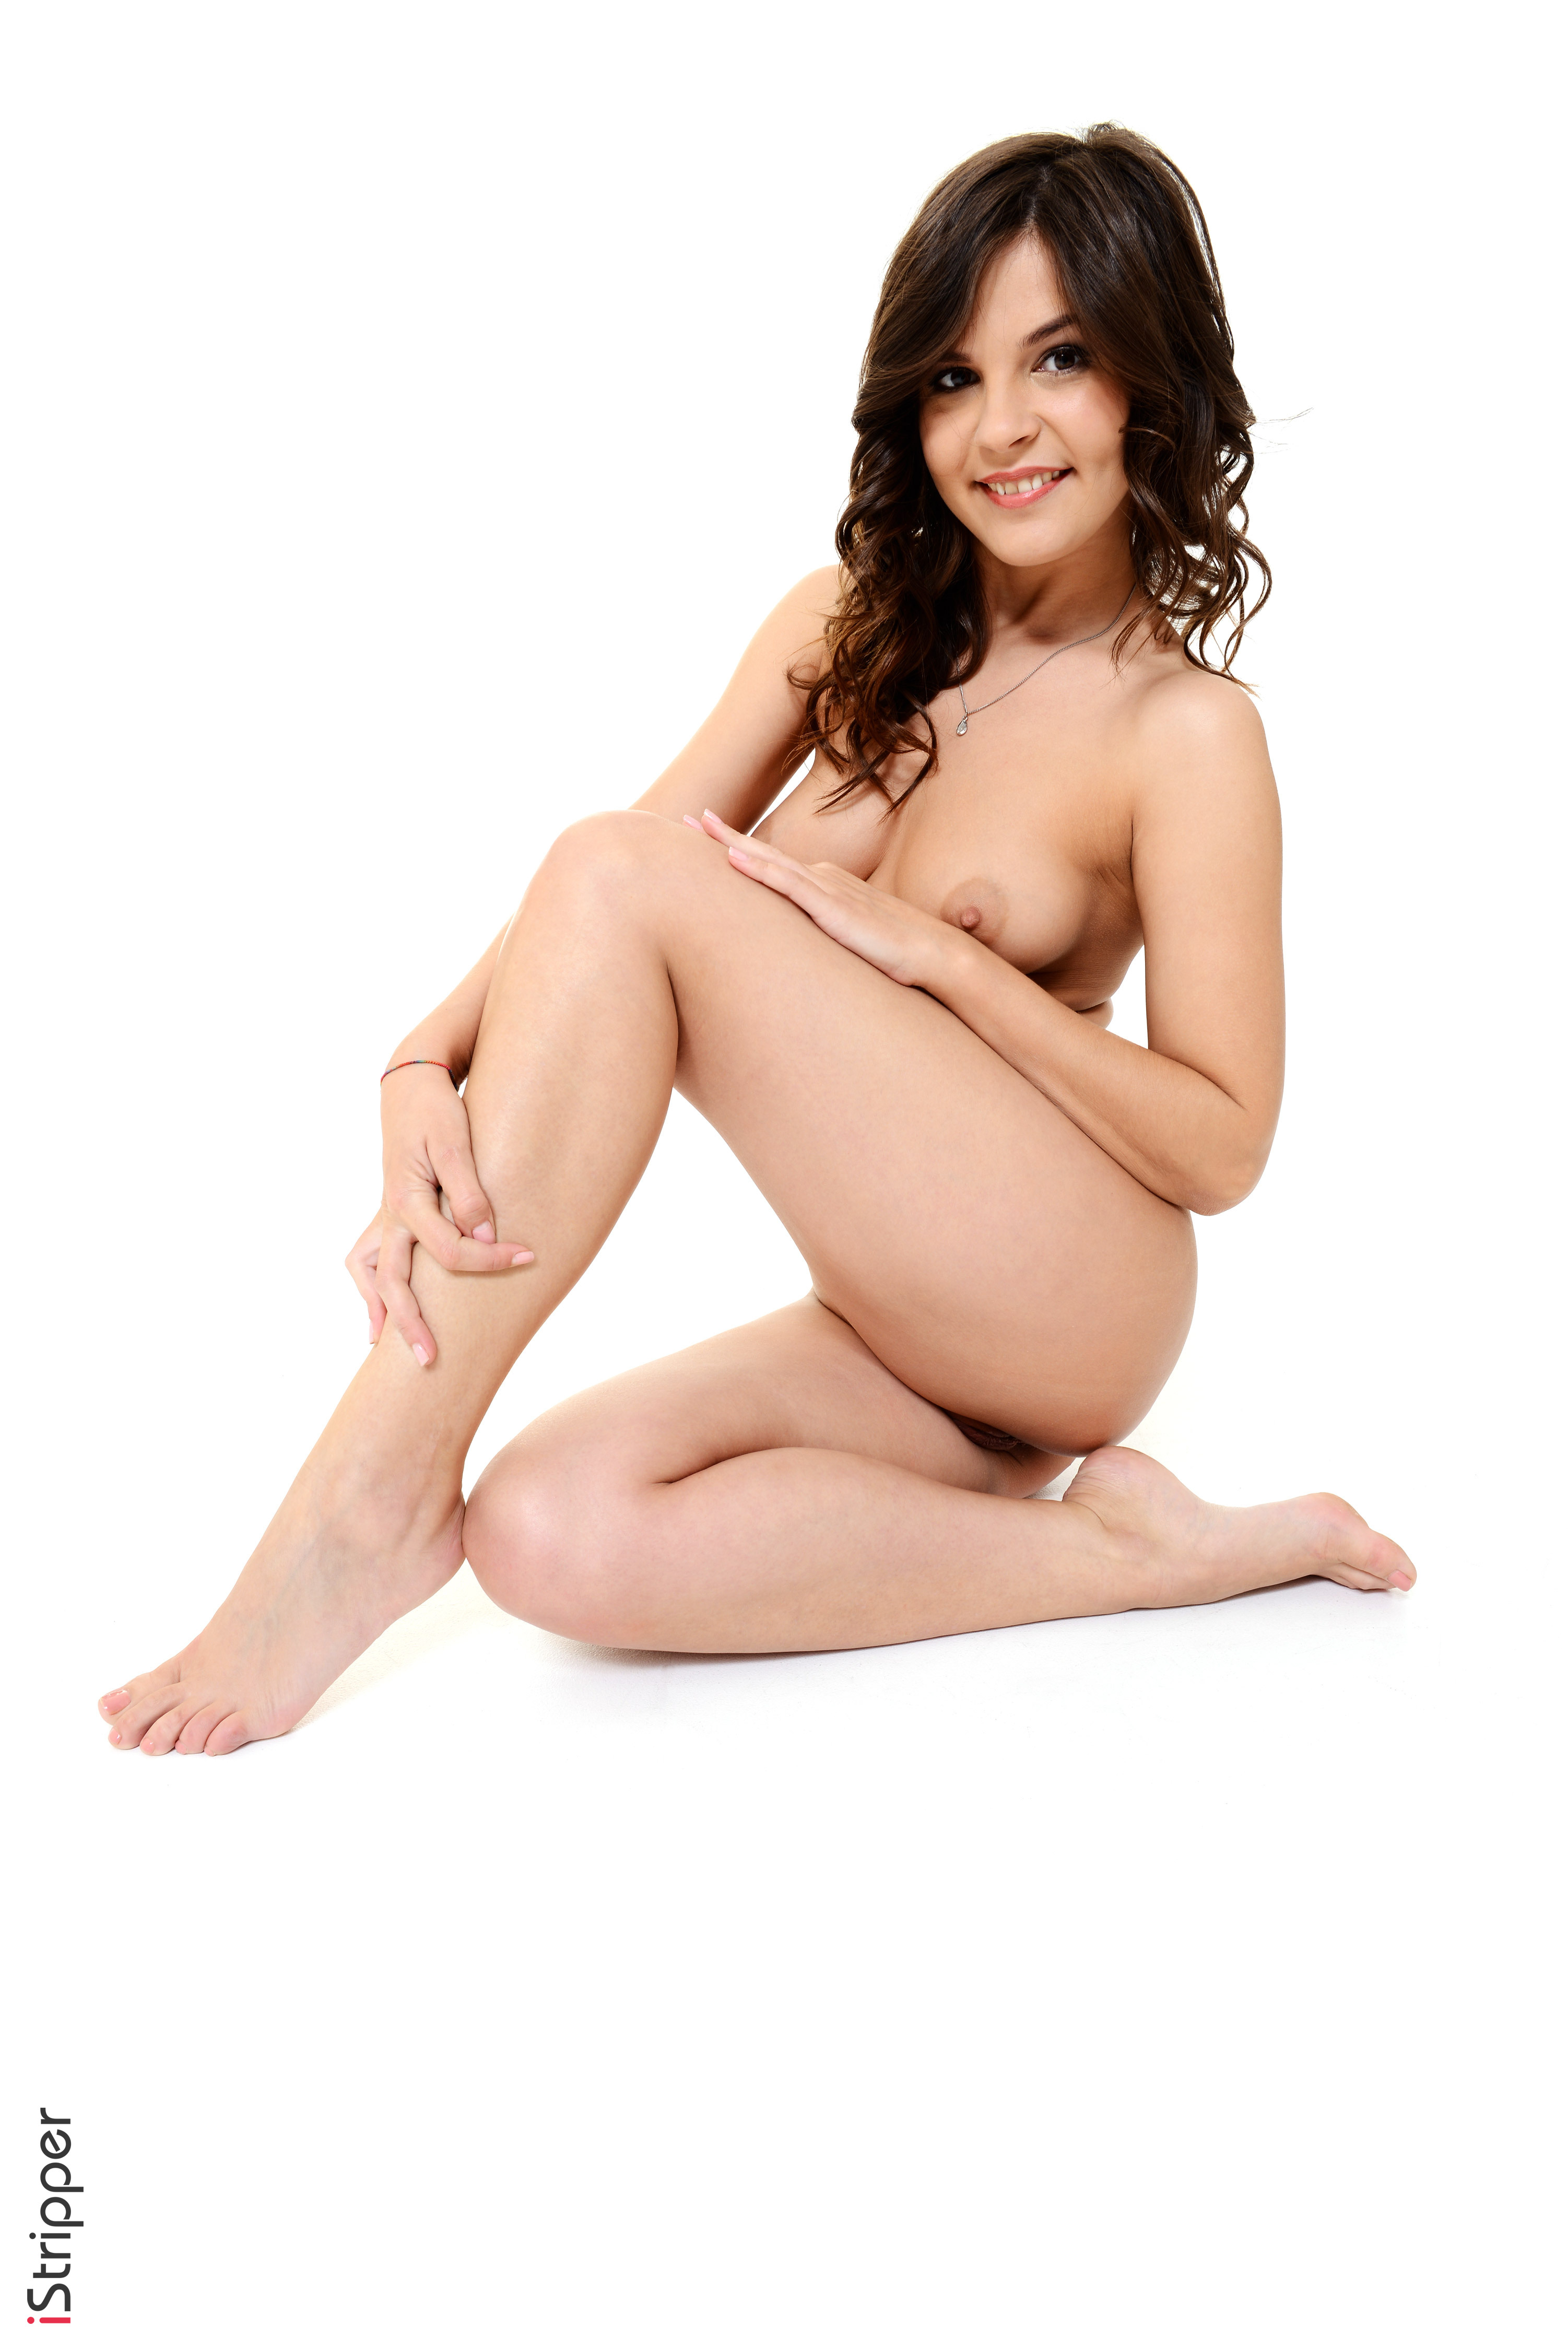 wallpapers of naked women